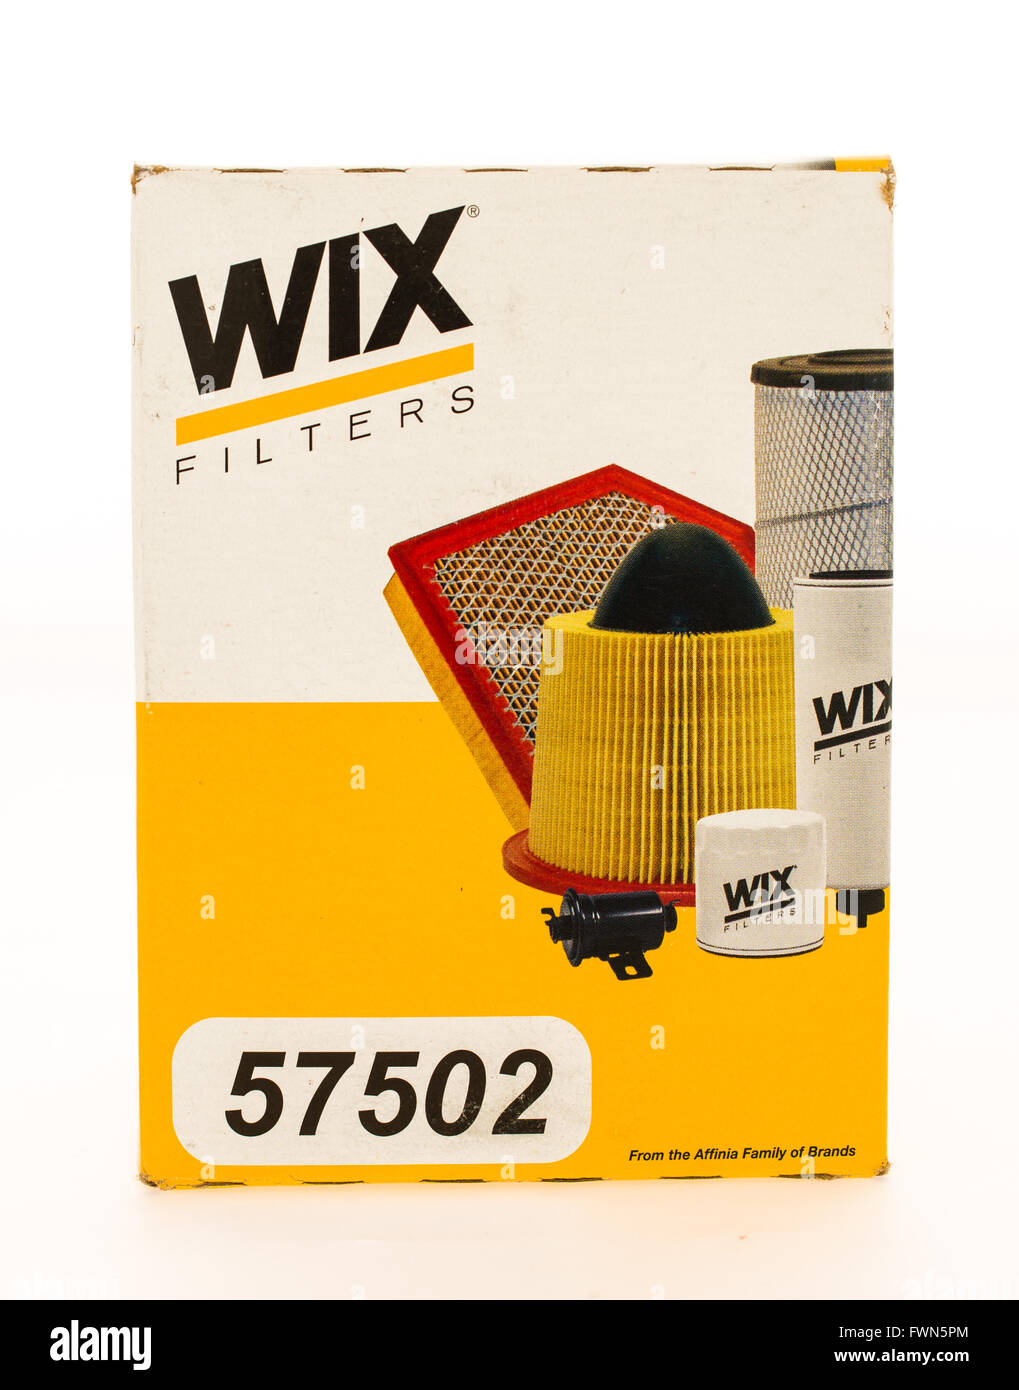 Winneconne, WI - 23 August 2015:  Box of a Wix oil flter. - Stock Image